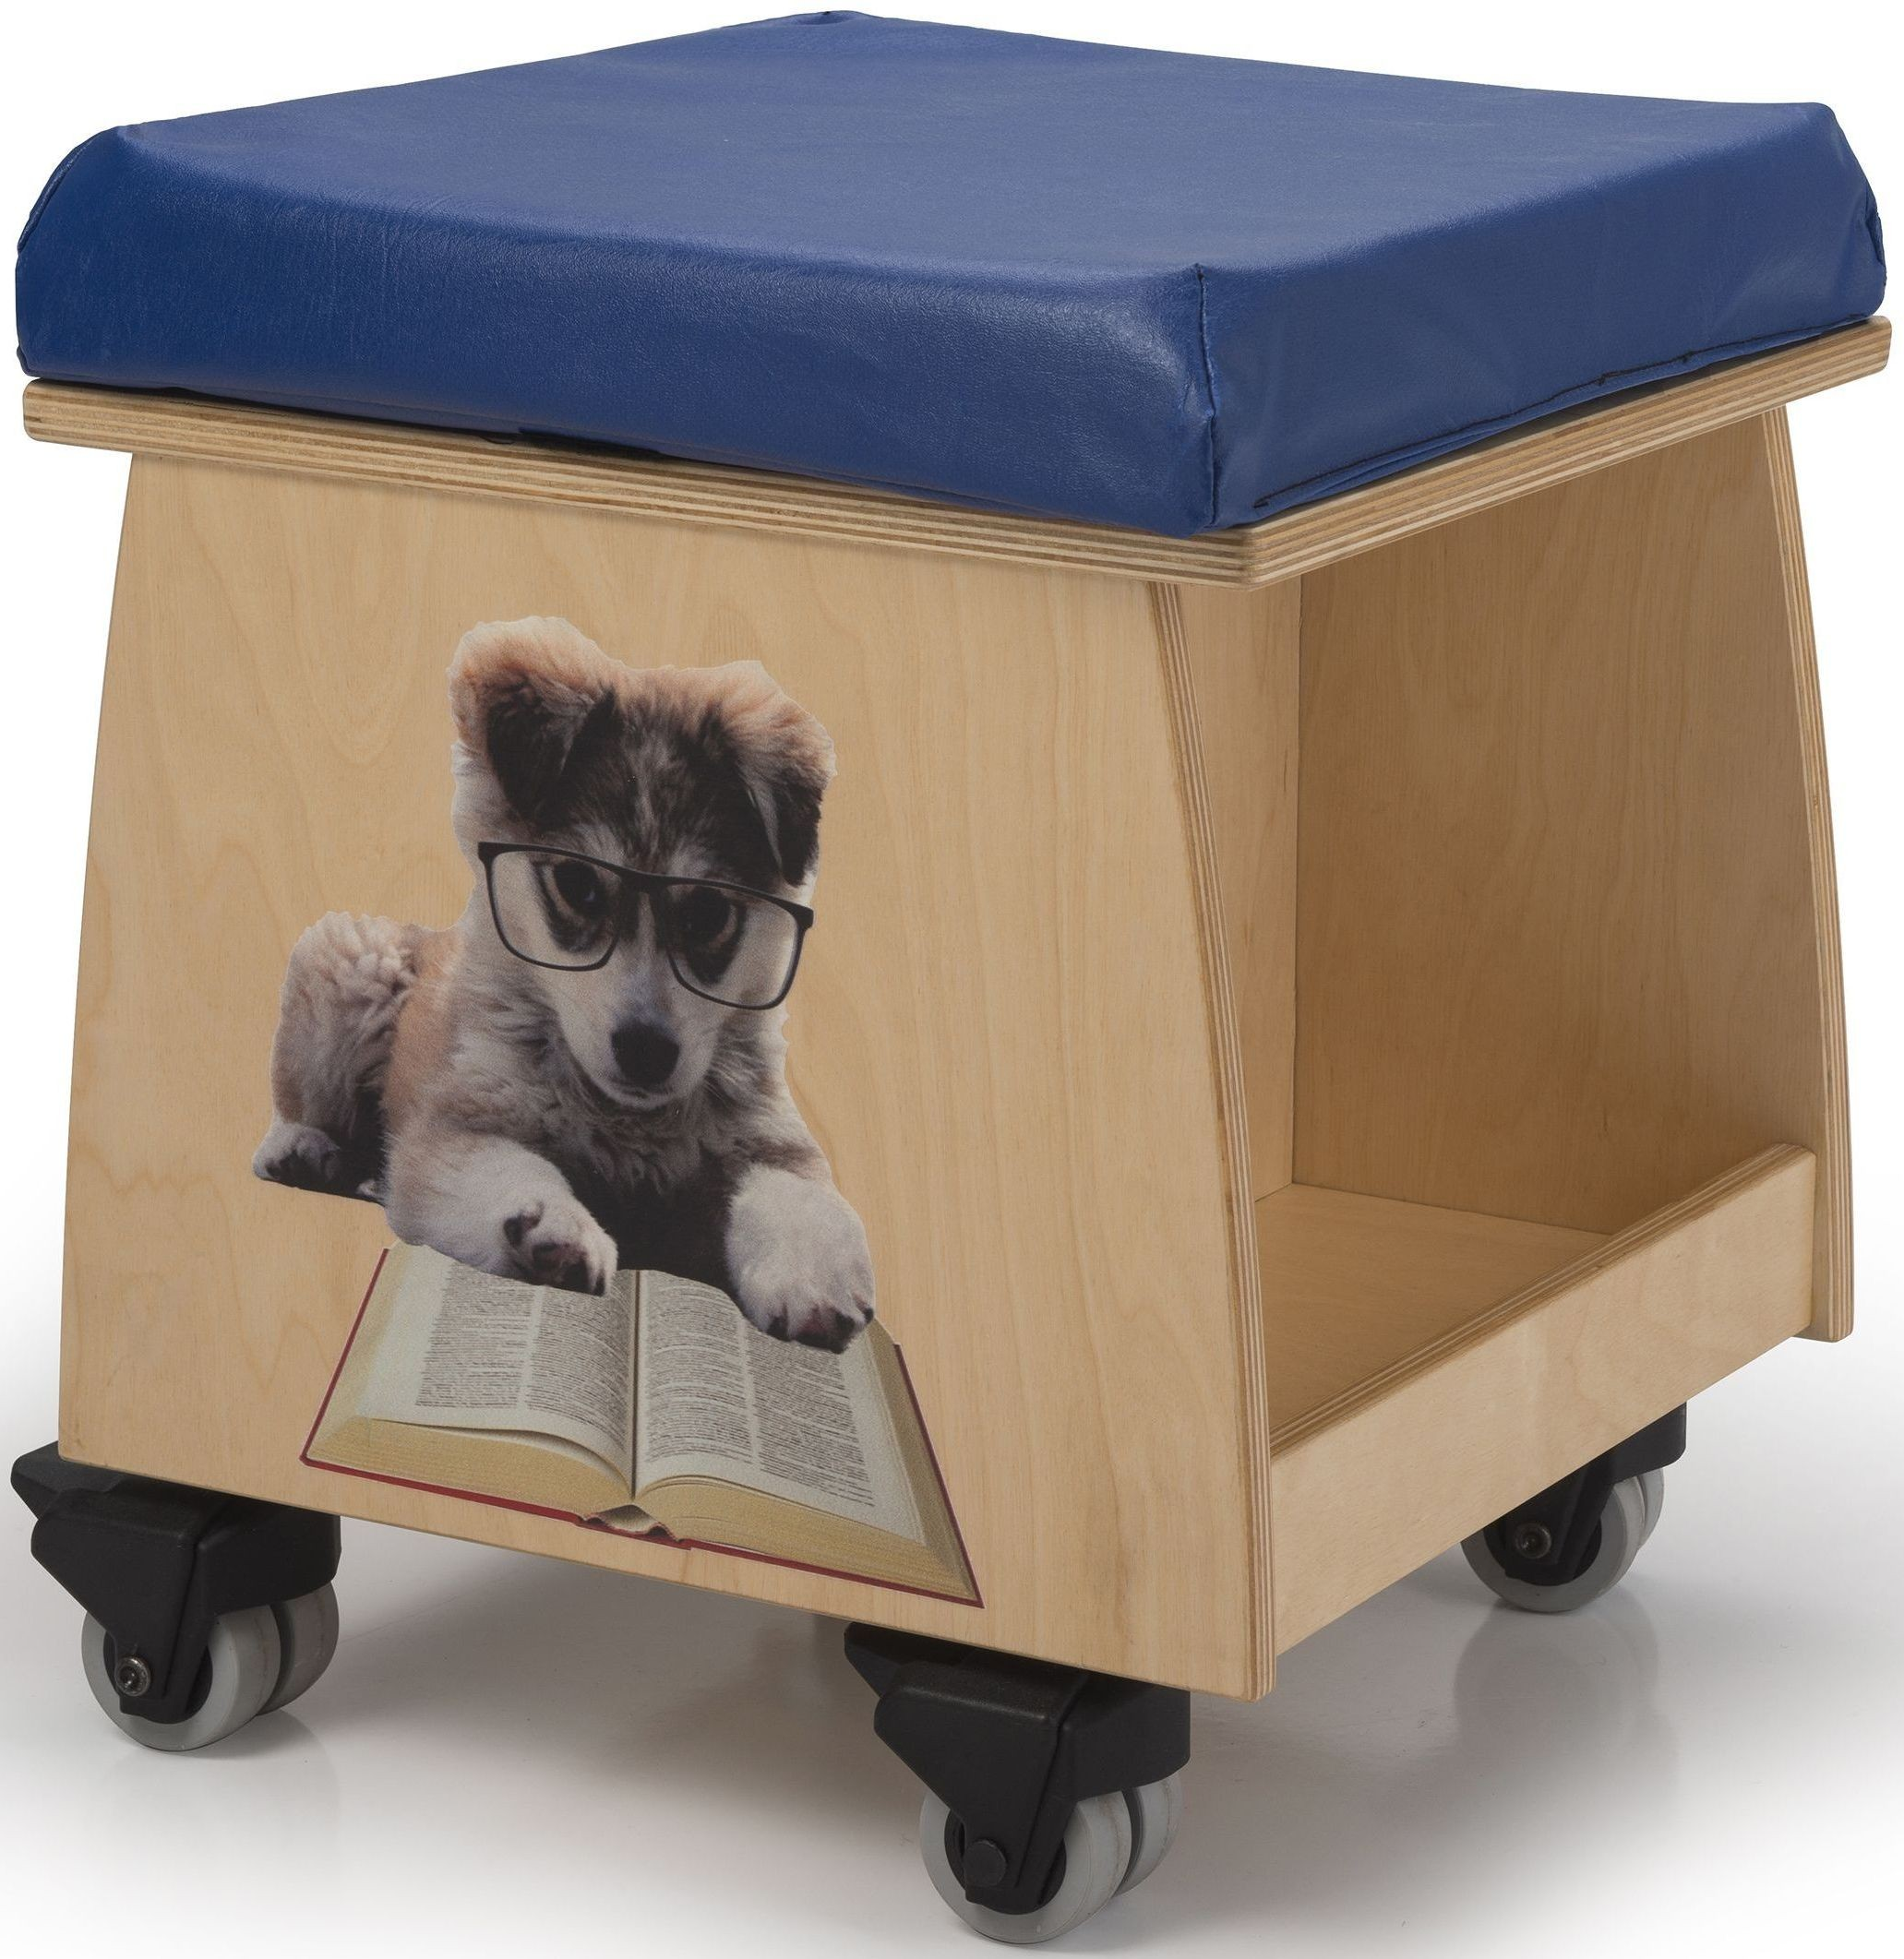 Book Lovers Teacher Stool With Image From Whitney Brothers